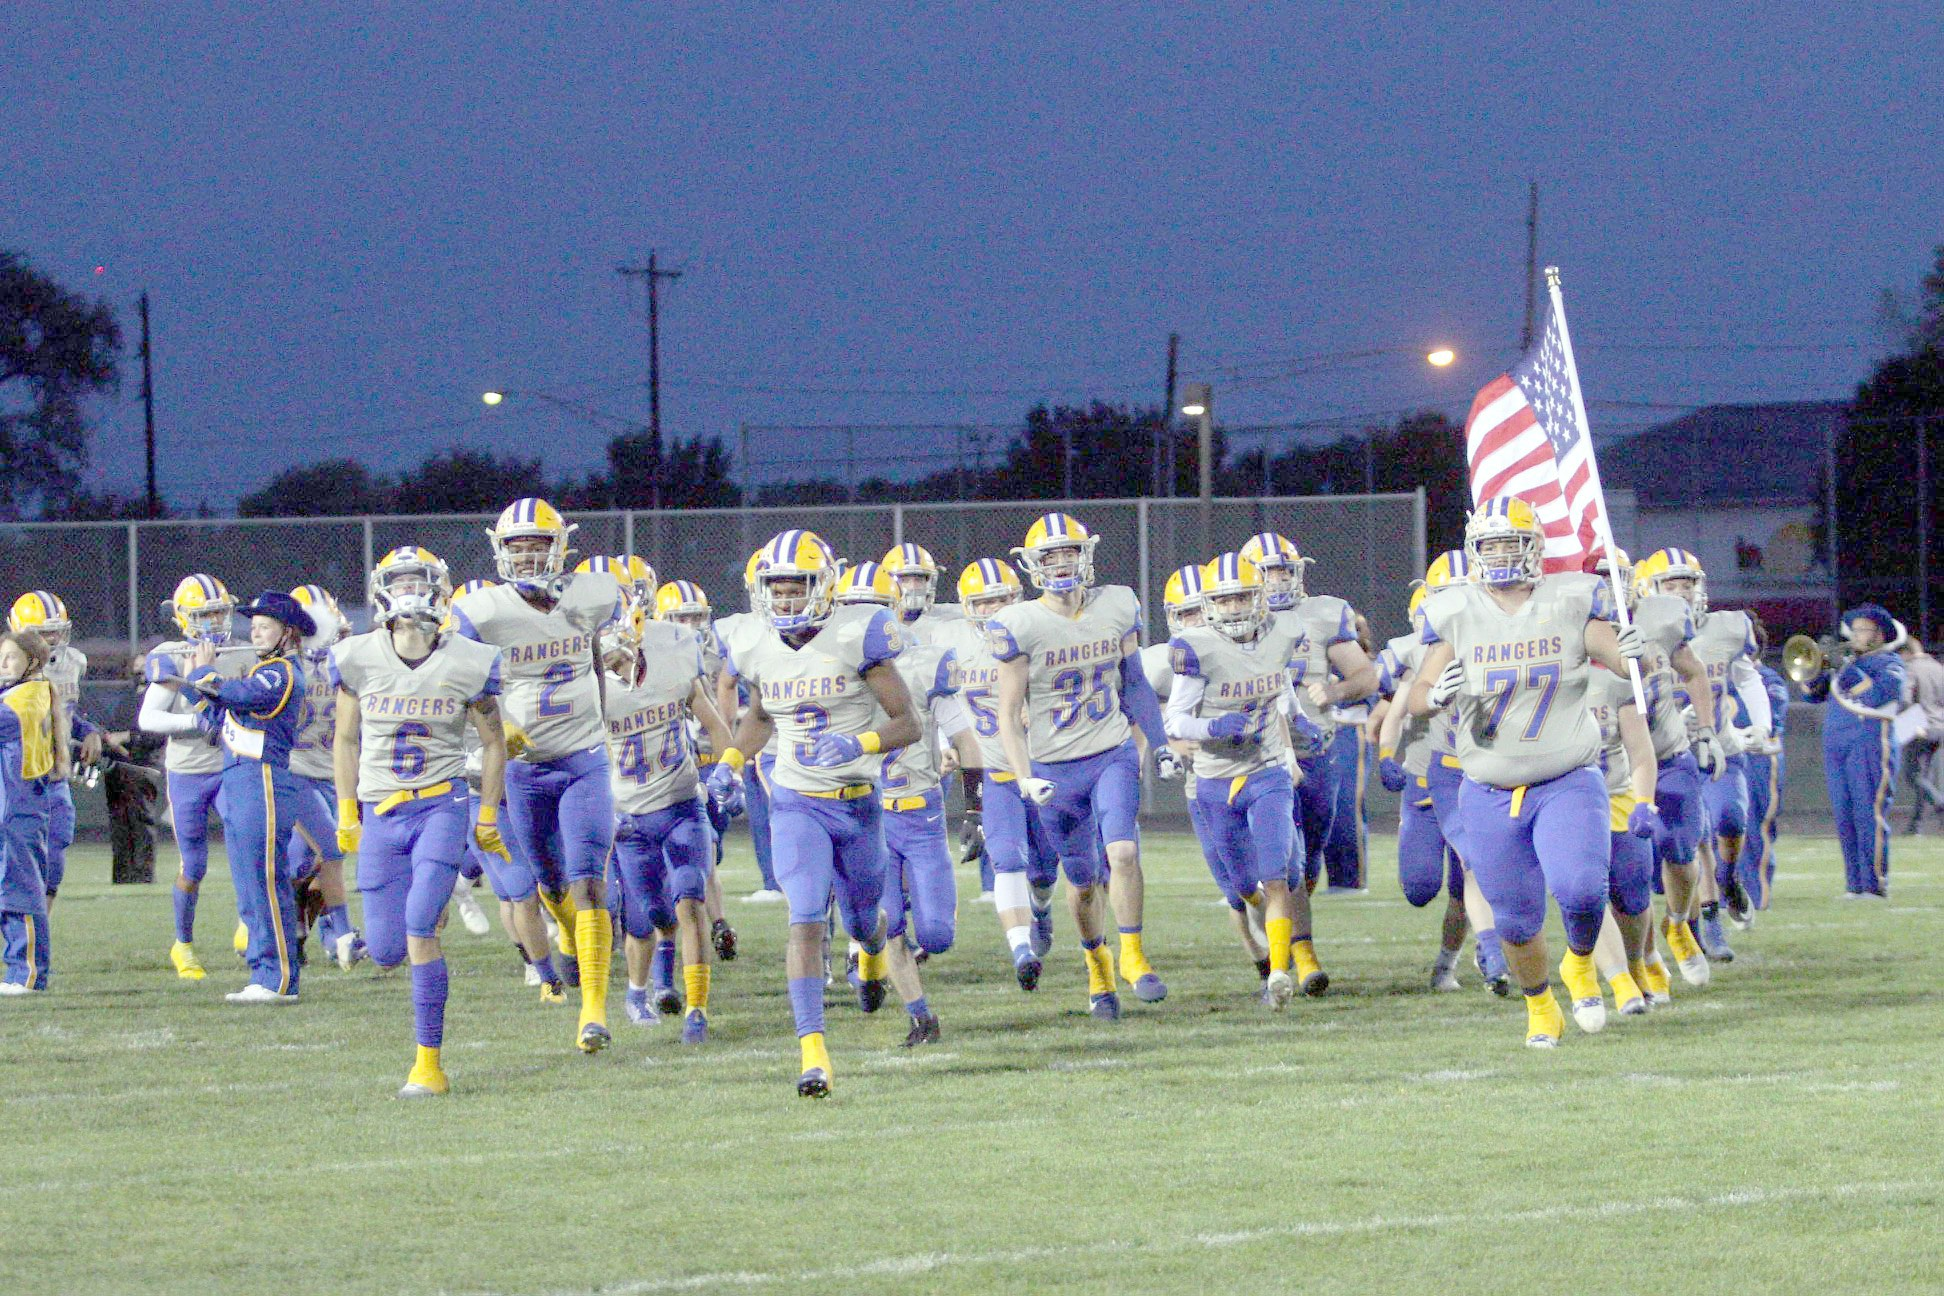 """Last year, Northwood (7-1) lost on a field goal as time ran out to Green Meadows Conference champion Fairview (8-0), 38-36, in the Division VI regional quarterfinals. Northwood had 454 yards of total offense, including 322 rushing, but it was not enough. The game saw over 900 yards of total offense by both teams combined. (Press file photo by Don Thompson/<a href=""""http://www.Facebook.com/DNRsport.com"""">www.Facebook.com/DNRsport.com</a>)"""